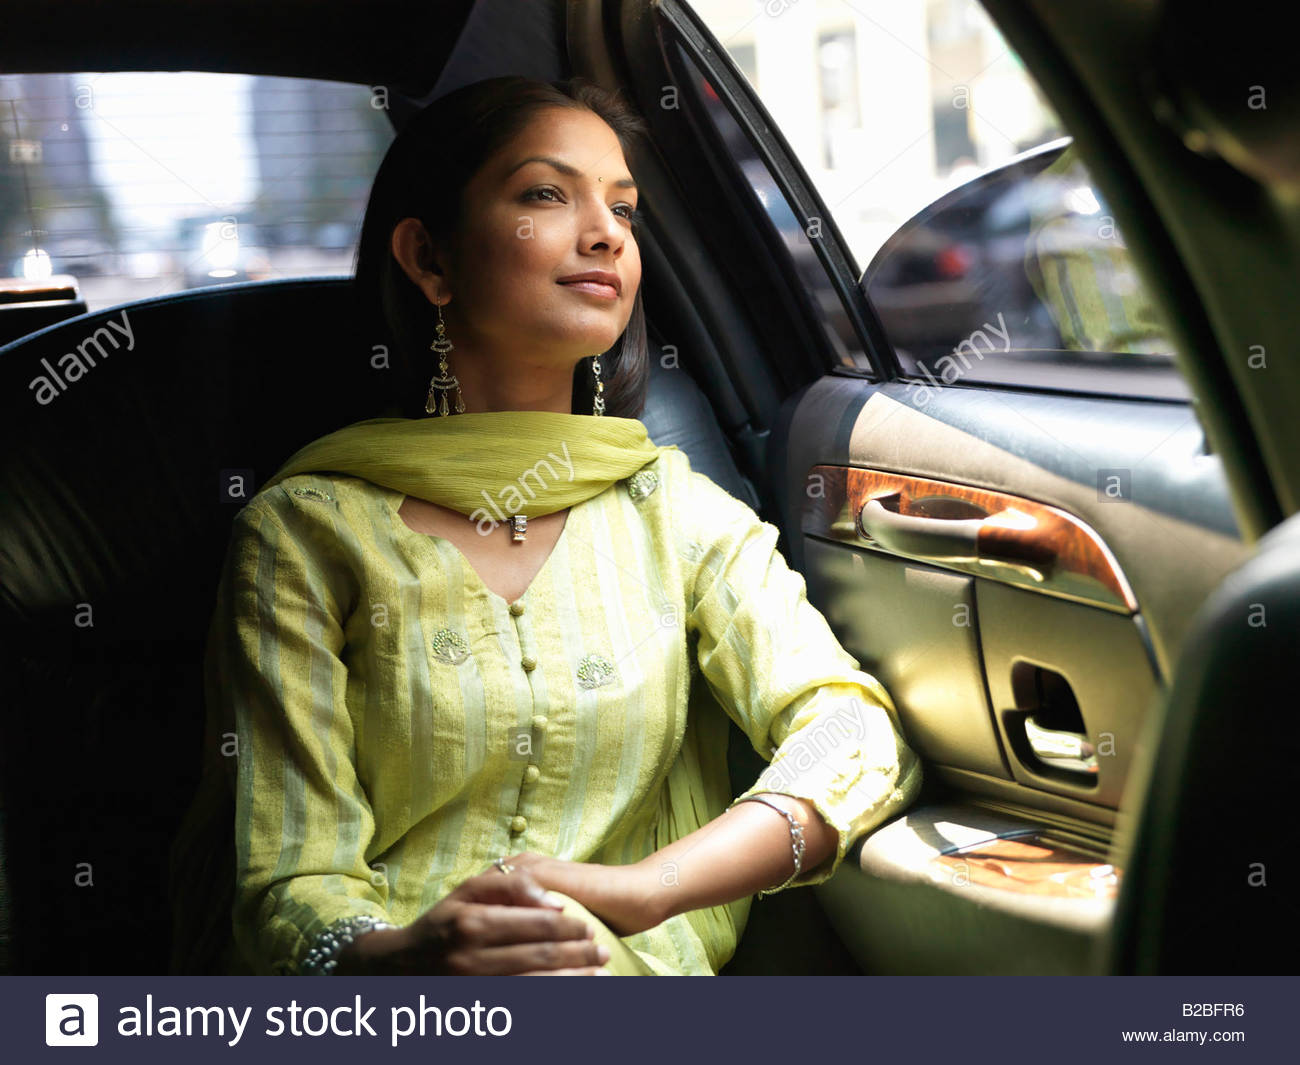 Indian woman in backseat of car Photo Stock